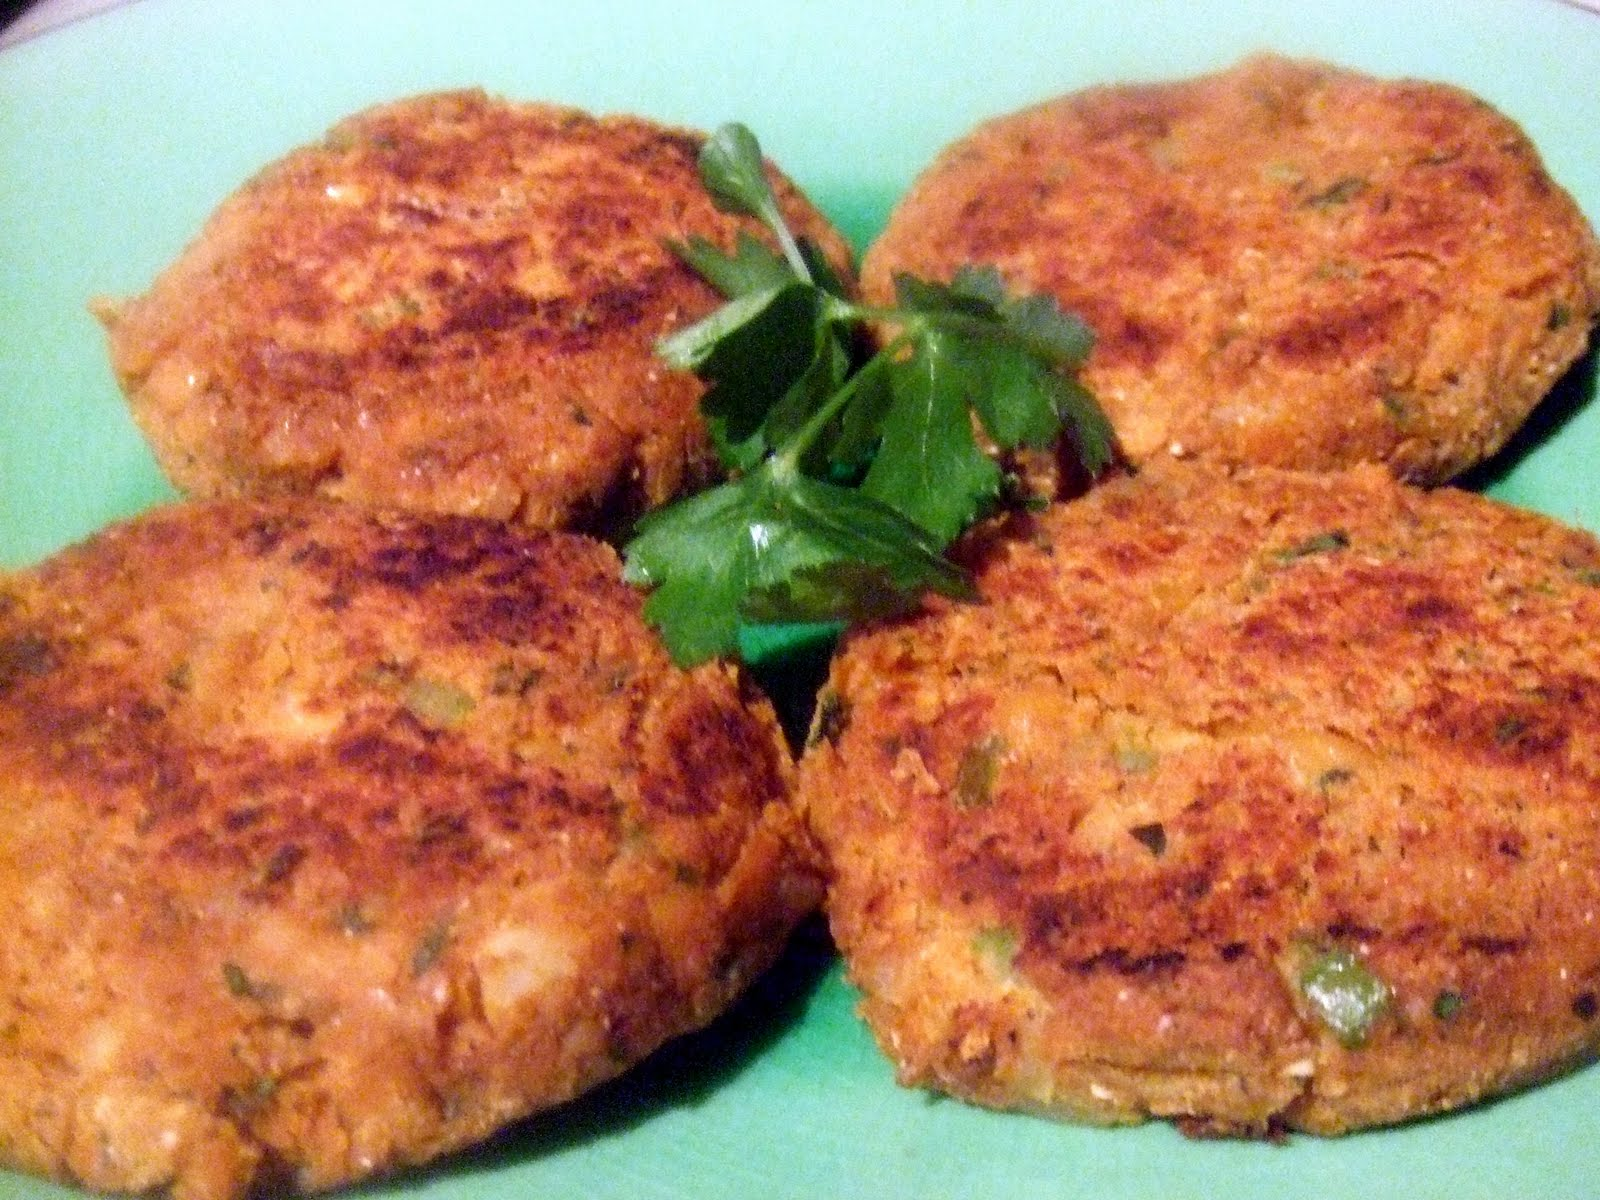 ... Extreme Vegan Makeover: Chickpea Burgers with Tzatziki Sauce Edition